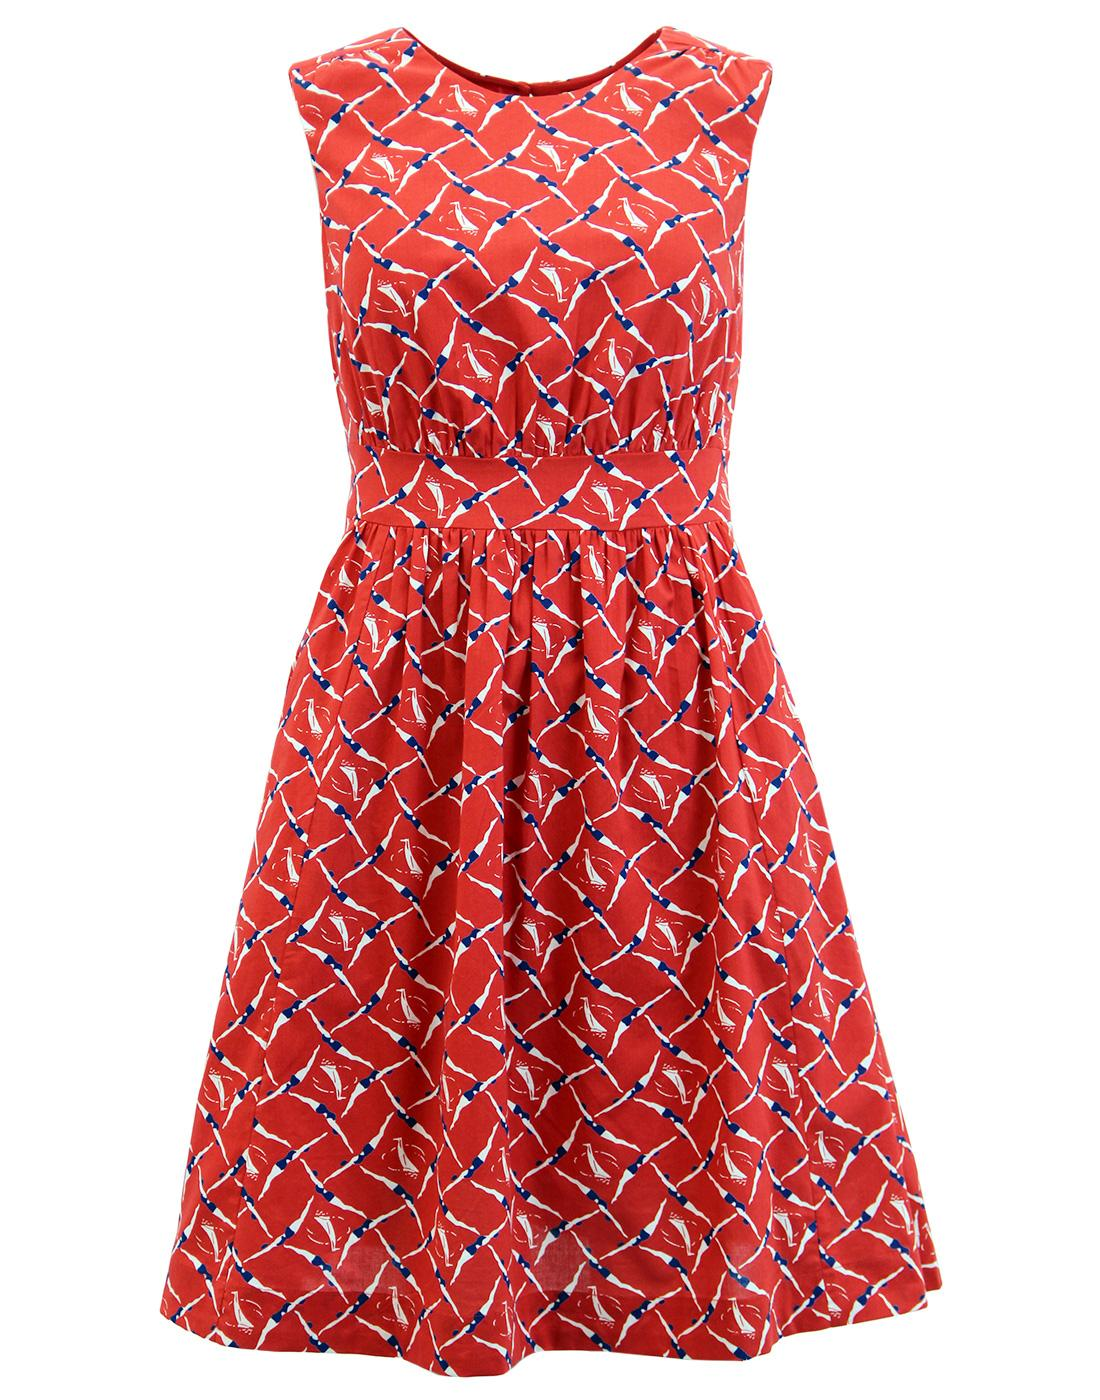 Lucy EMILY AND FIN Retro Vintage Sleeveless Dress